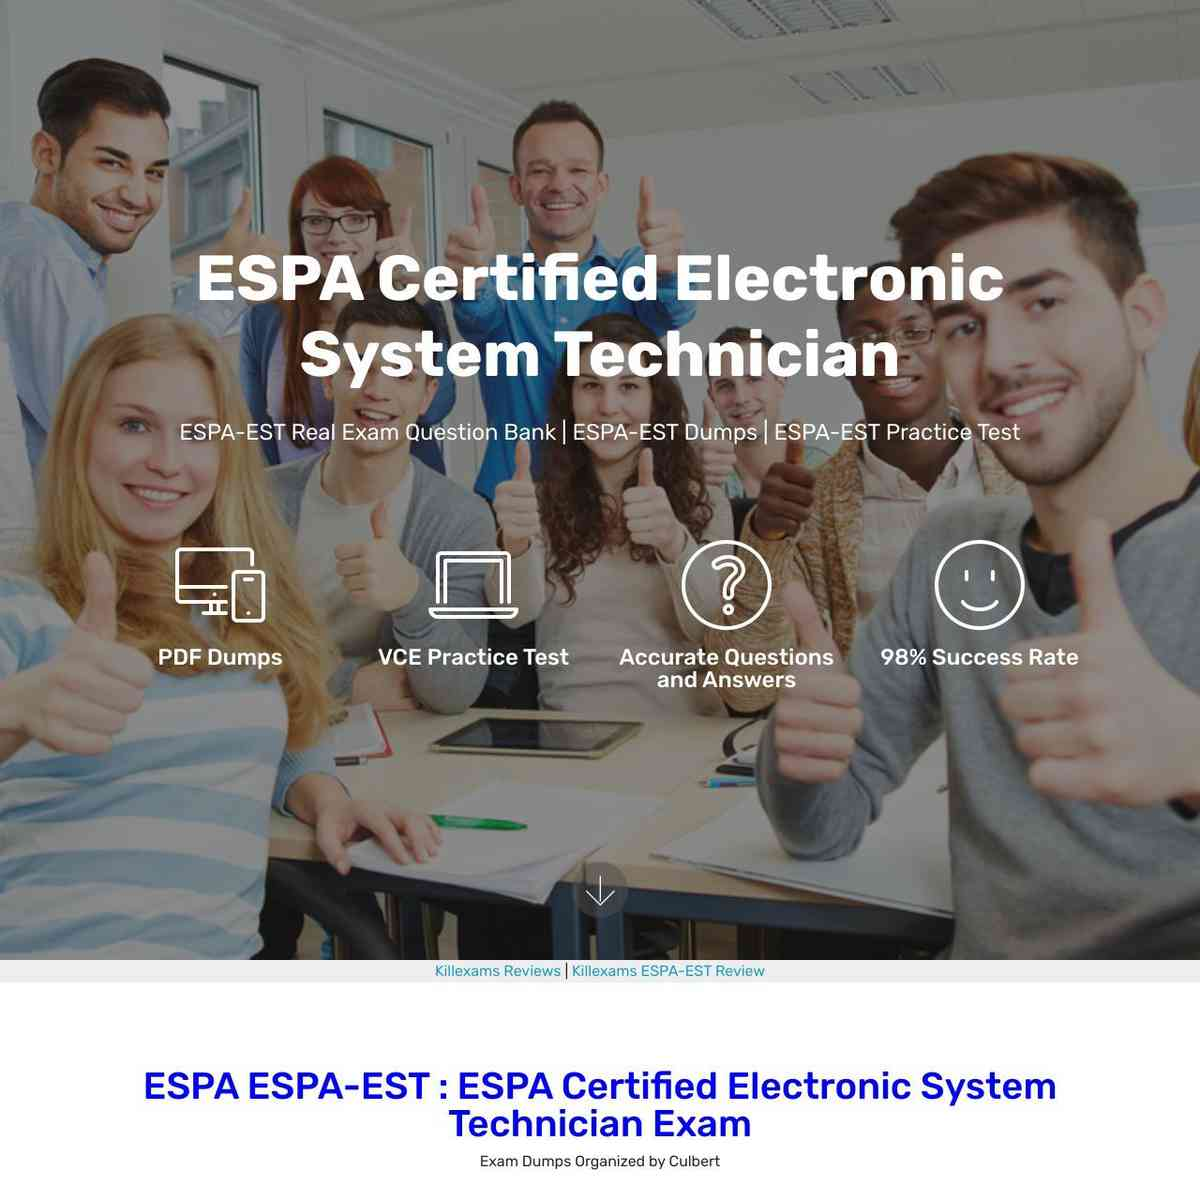 These are 0day updated ESPA-EST PDF Download